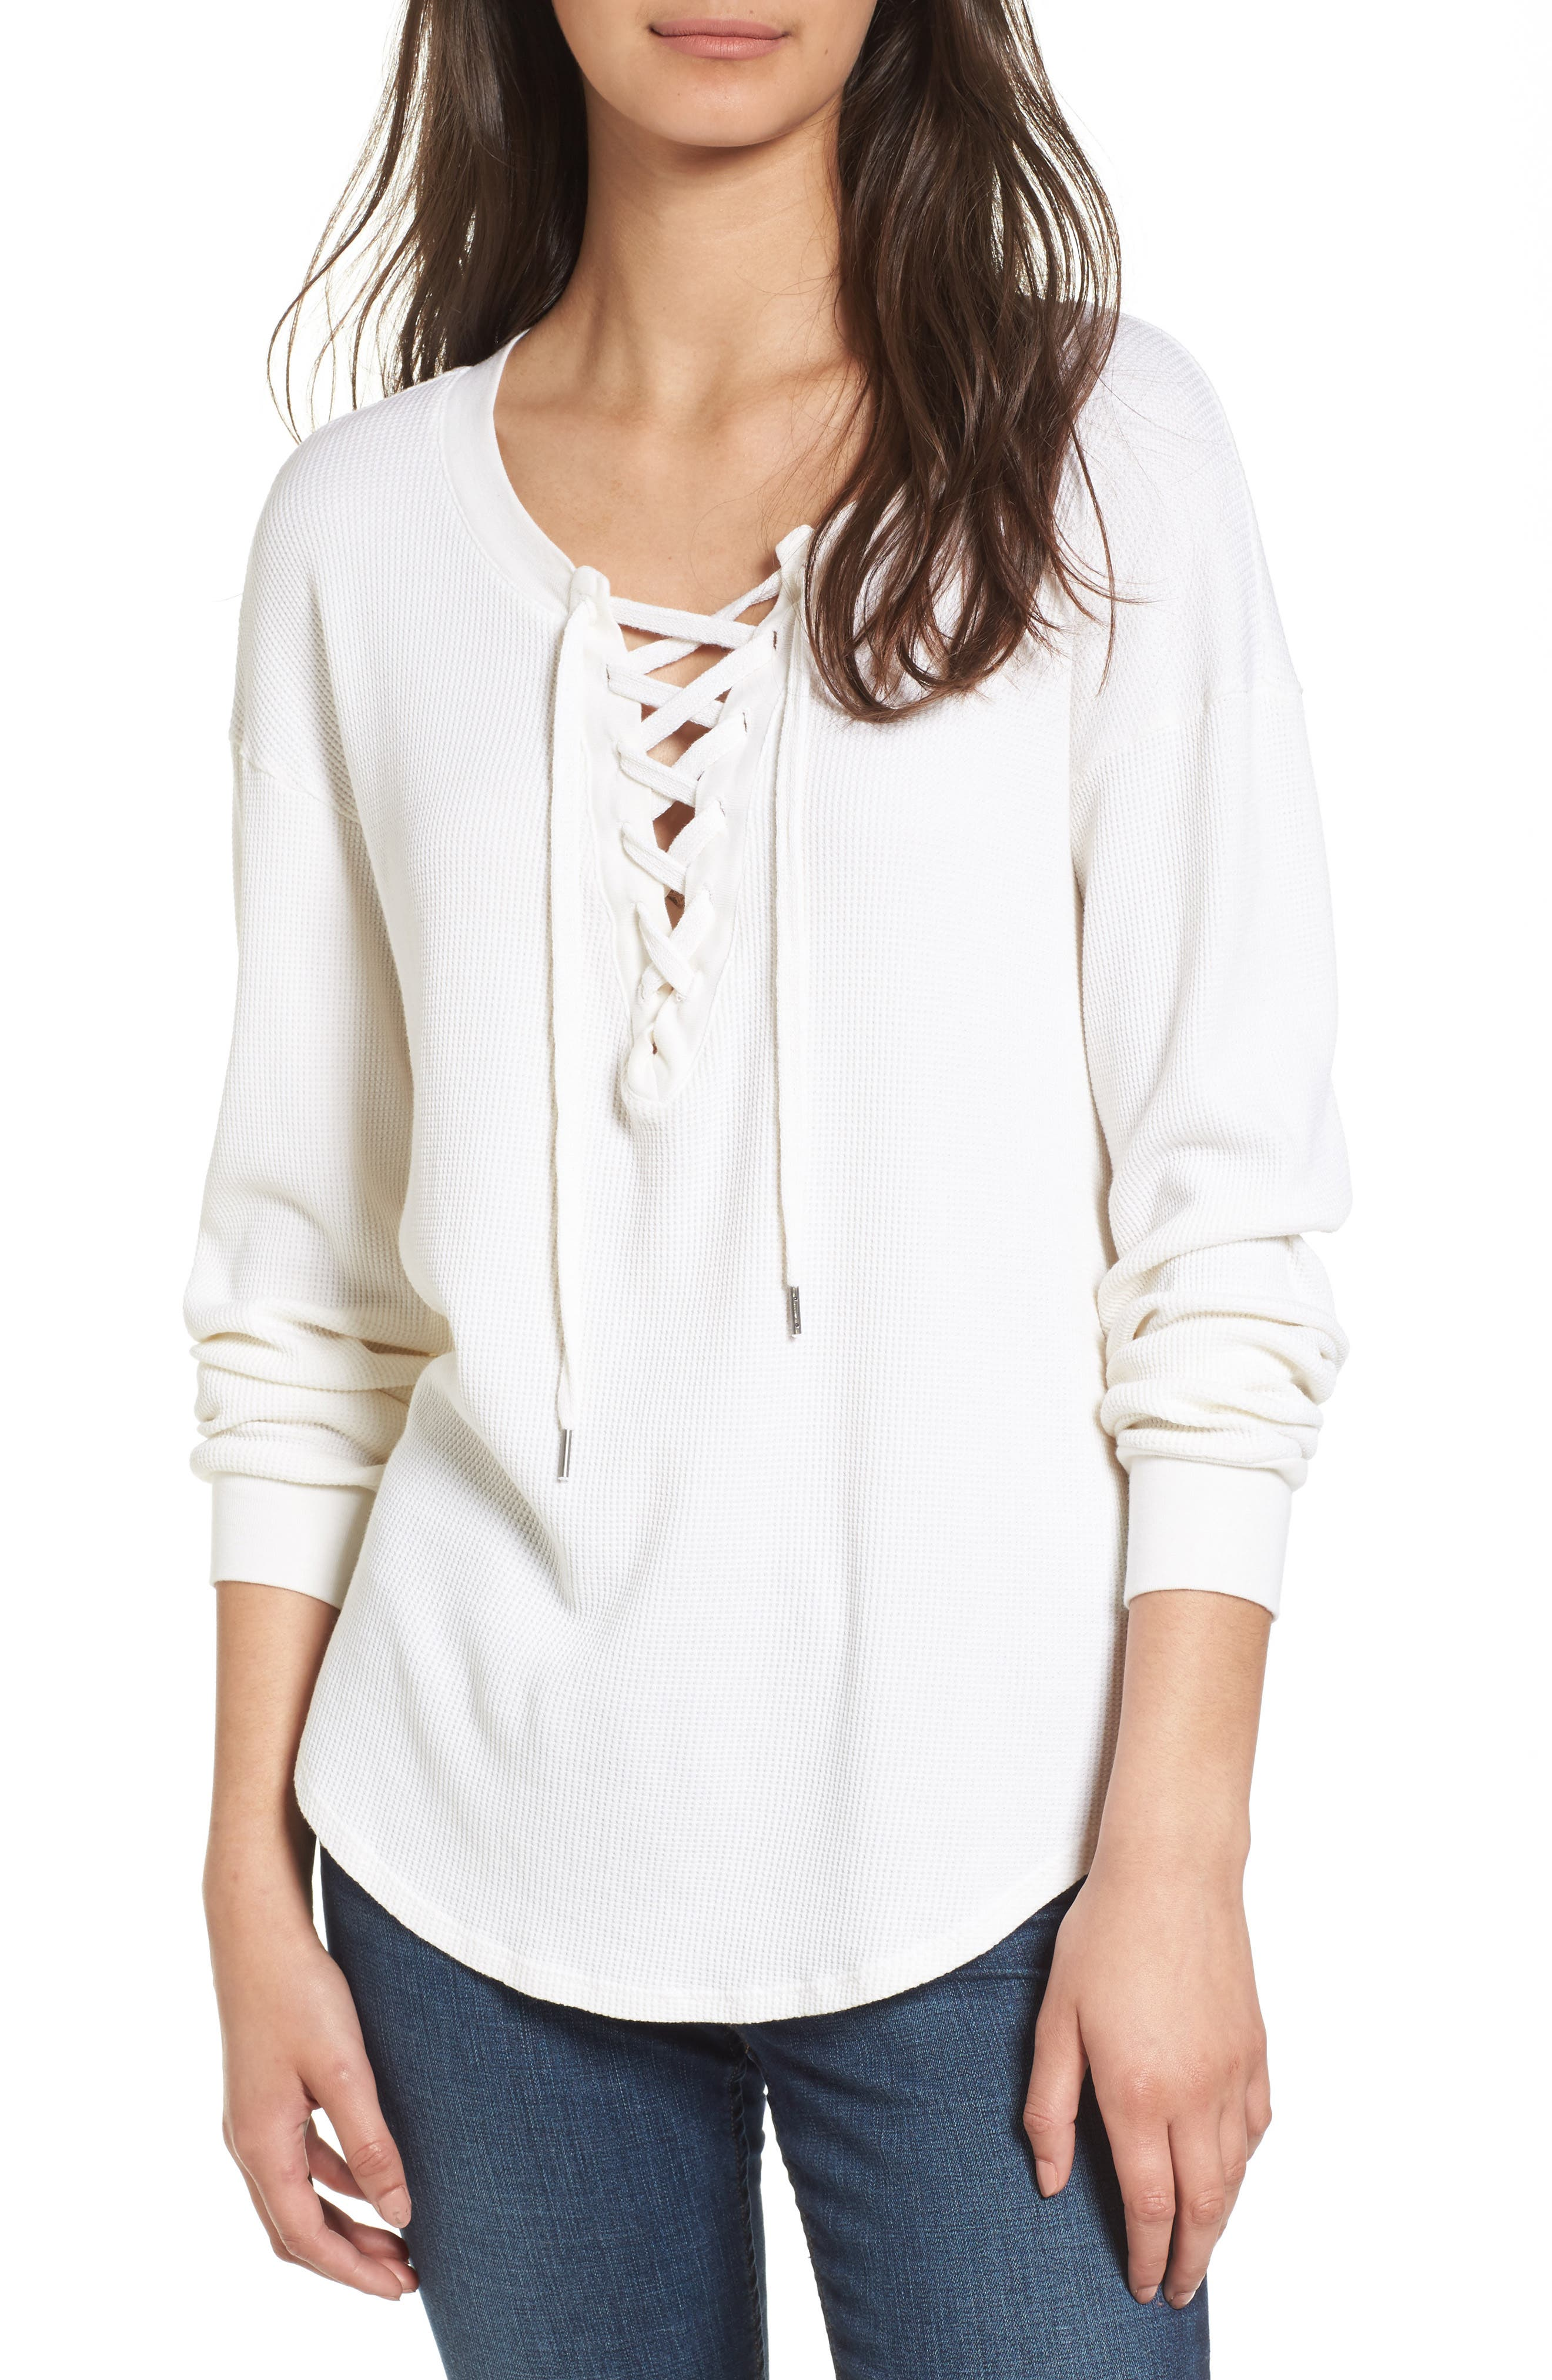 Splendid Lace-Up Thermal Shirt